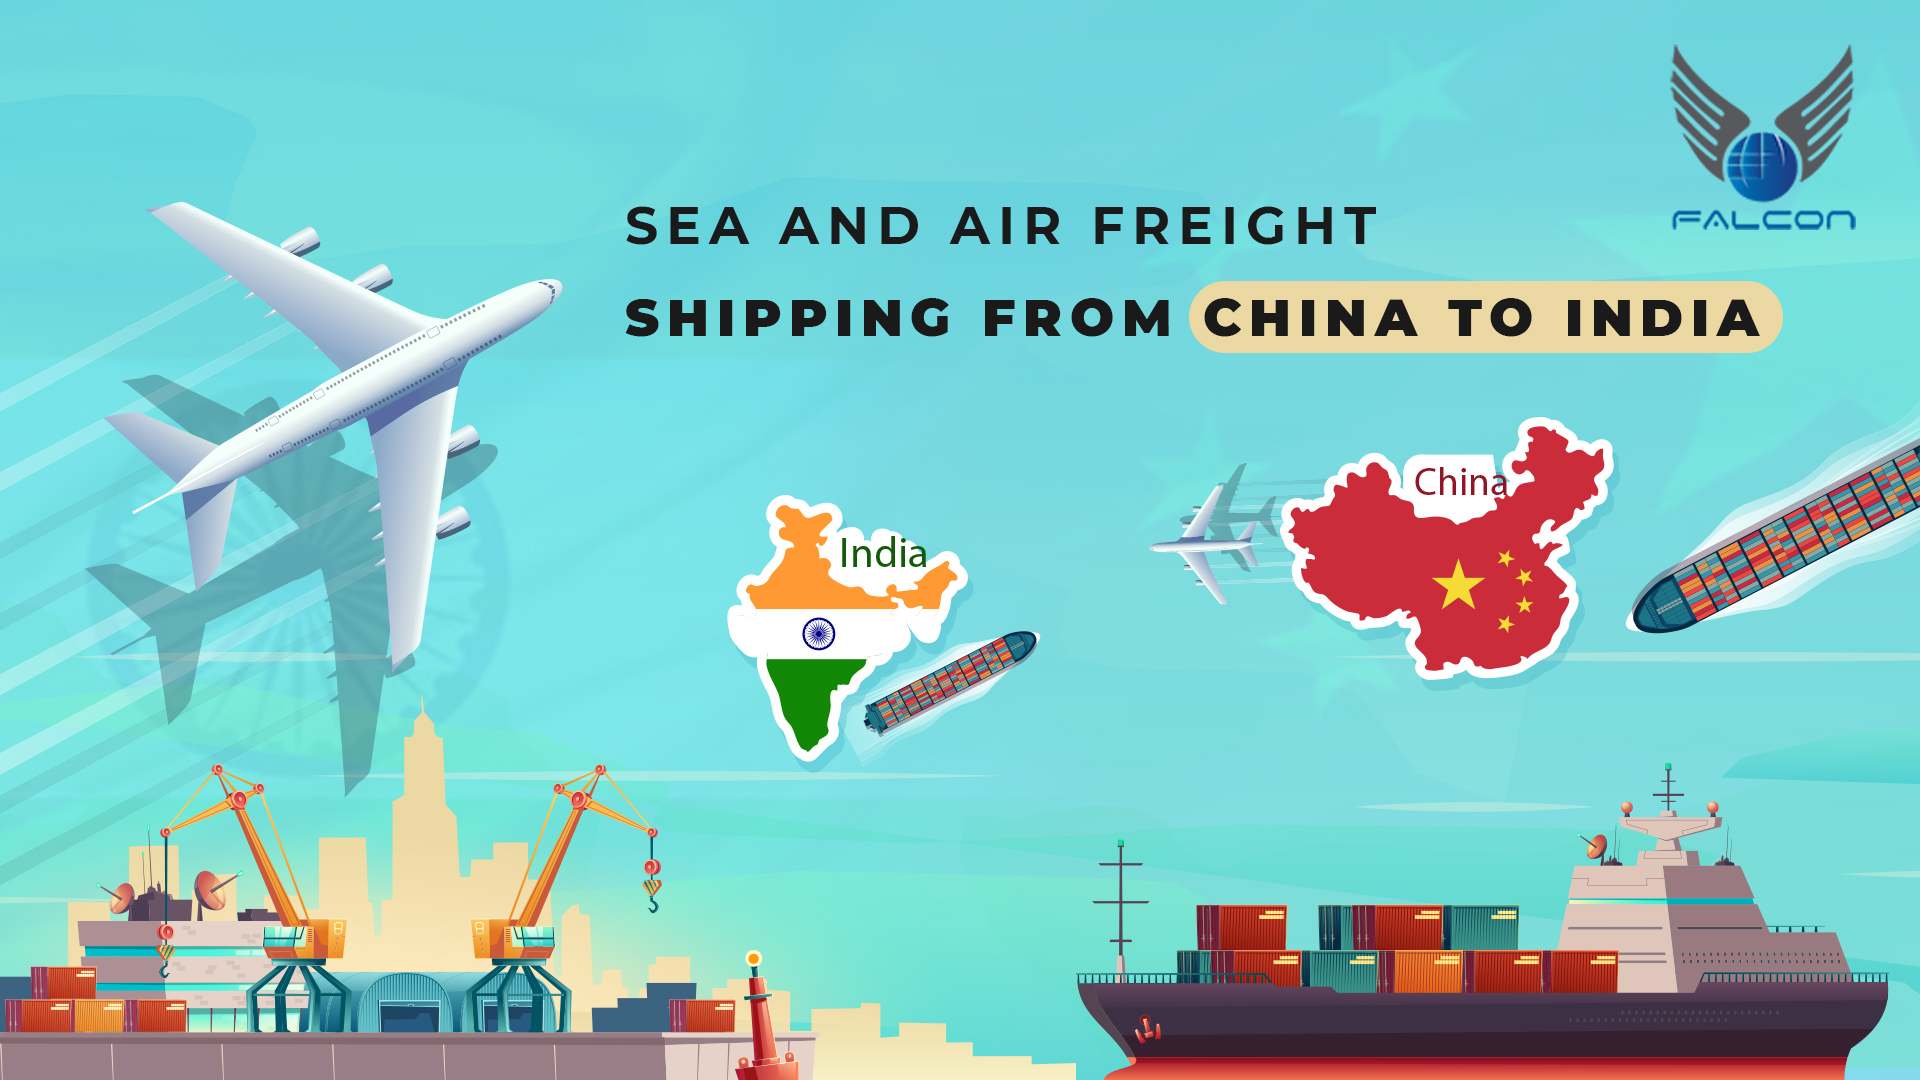 Sea And Air Freight Shipping From China to India